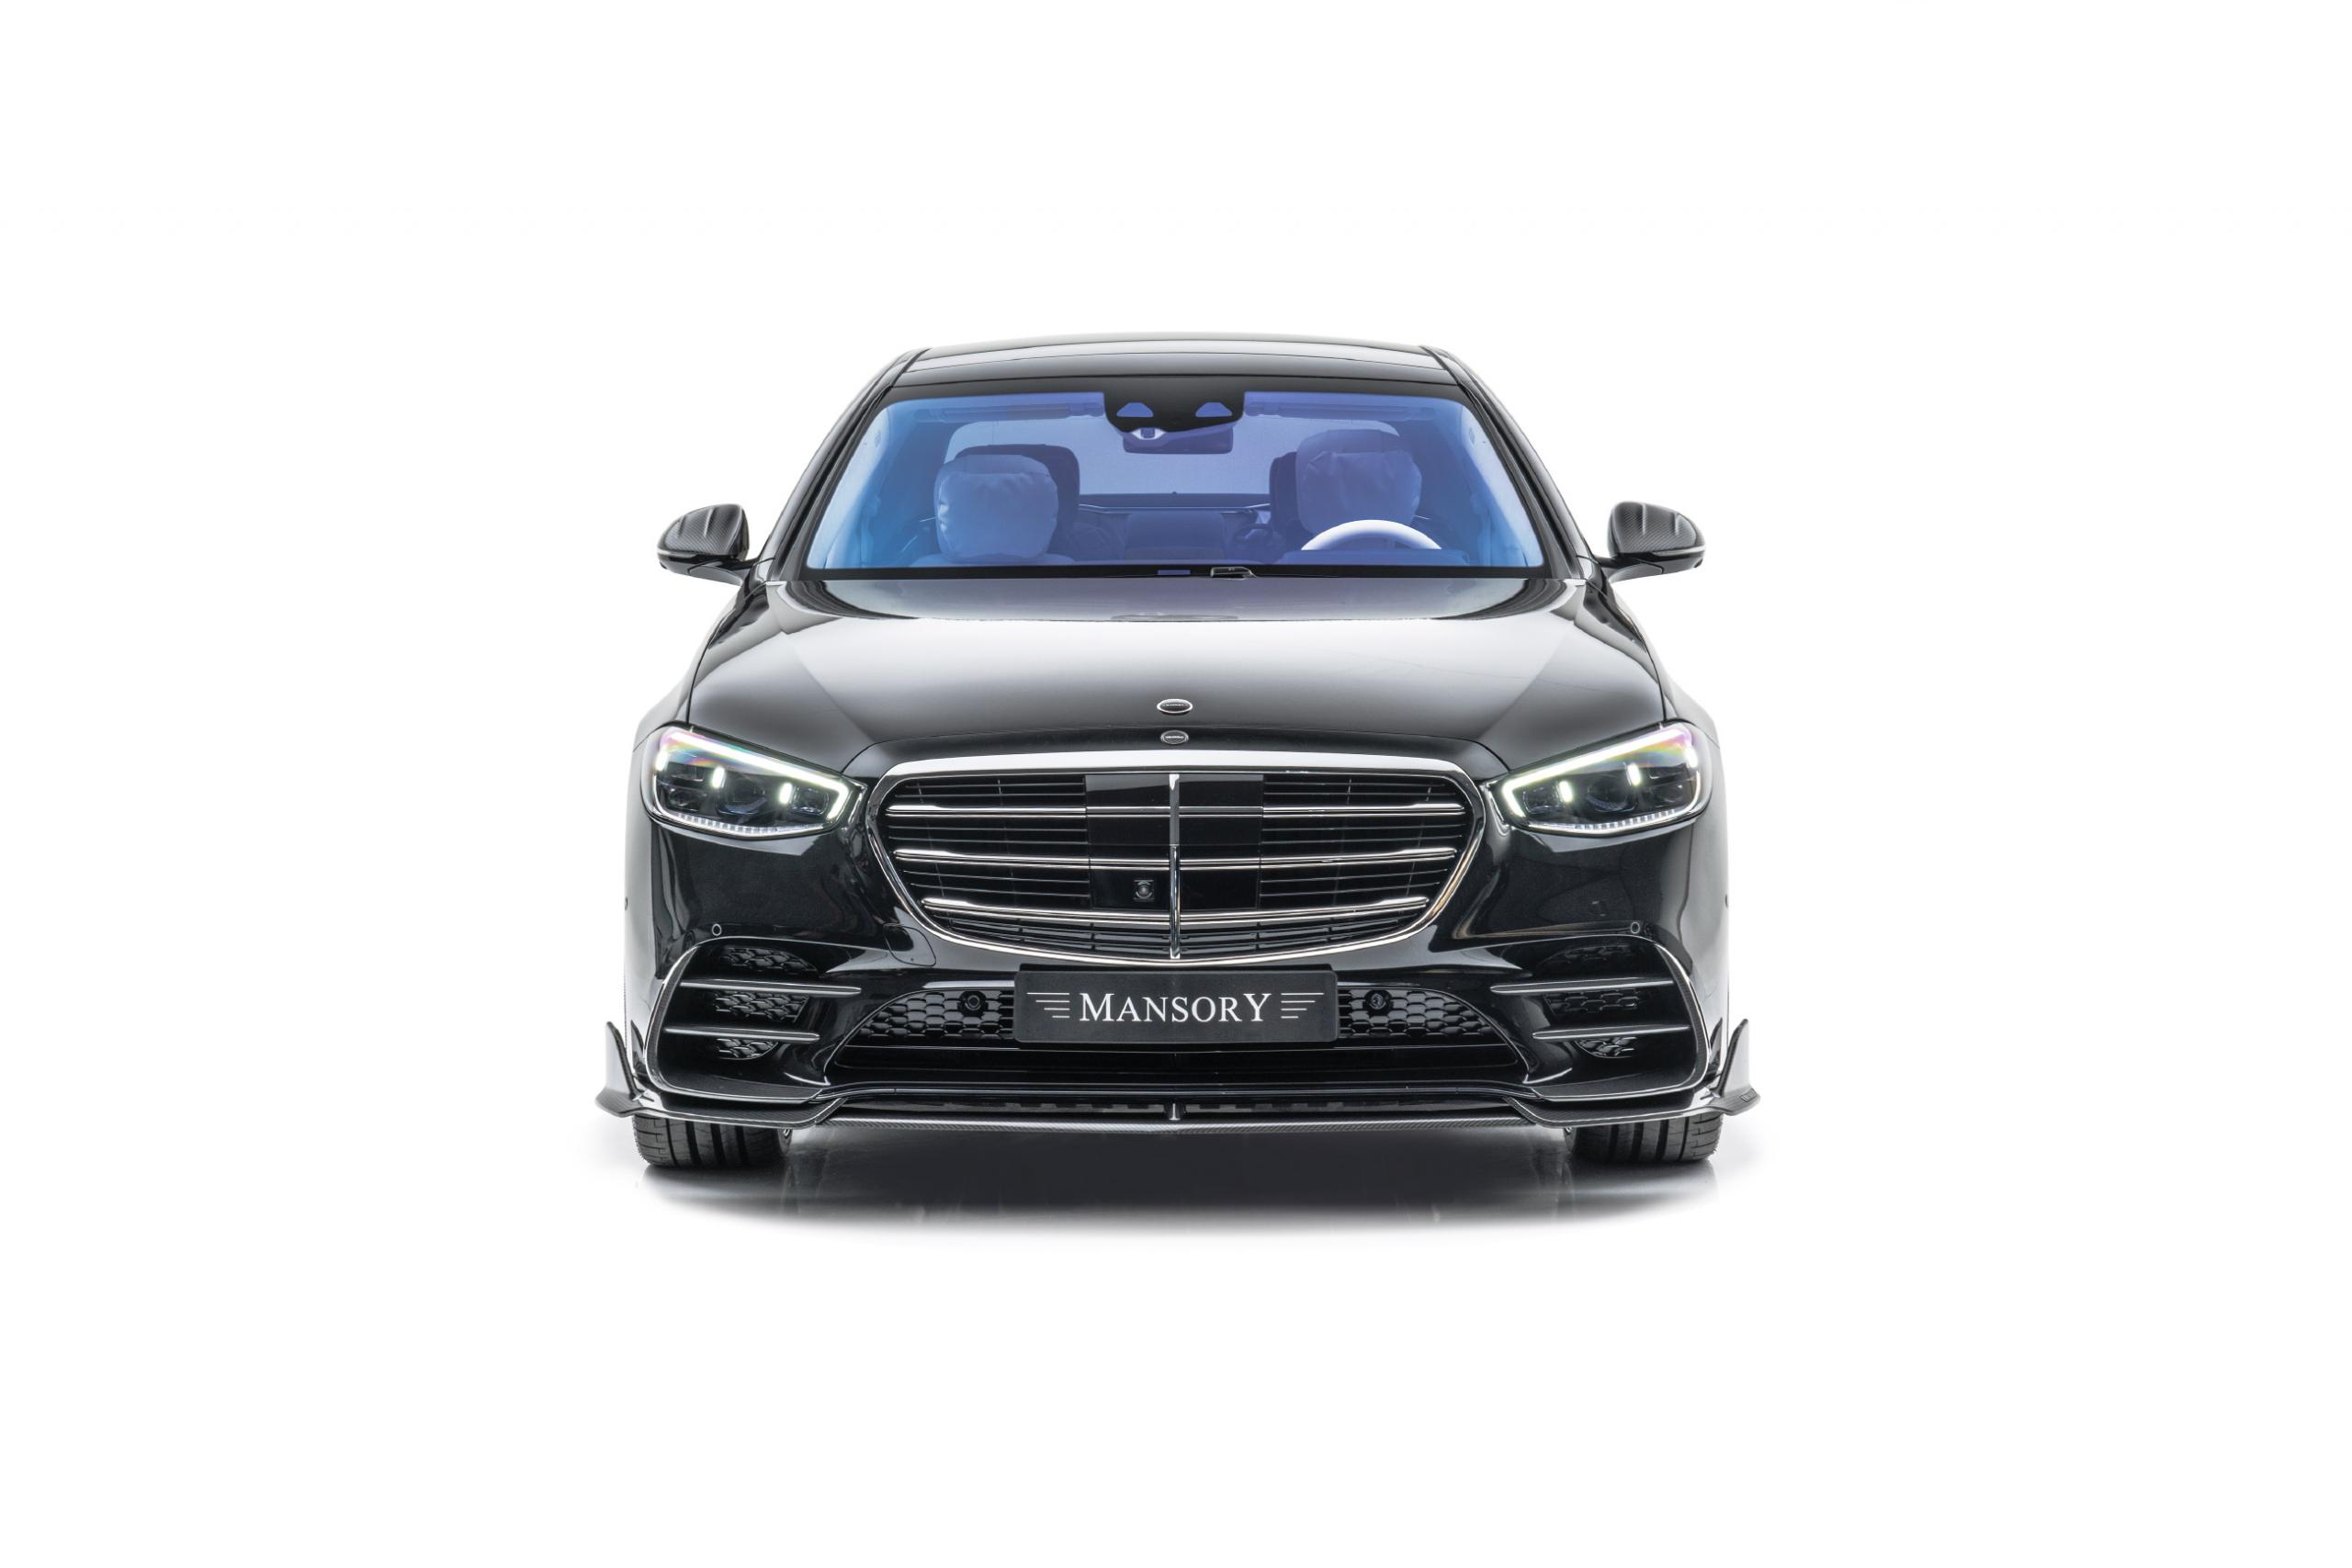 mansory w223 mercedes s class body kit carbon fiber front lip front grill 2021 2022 2023